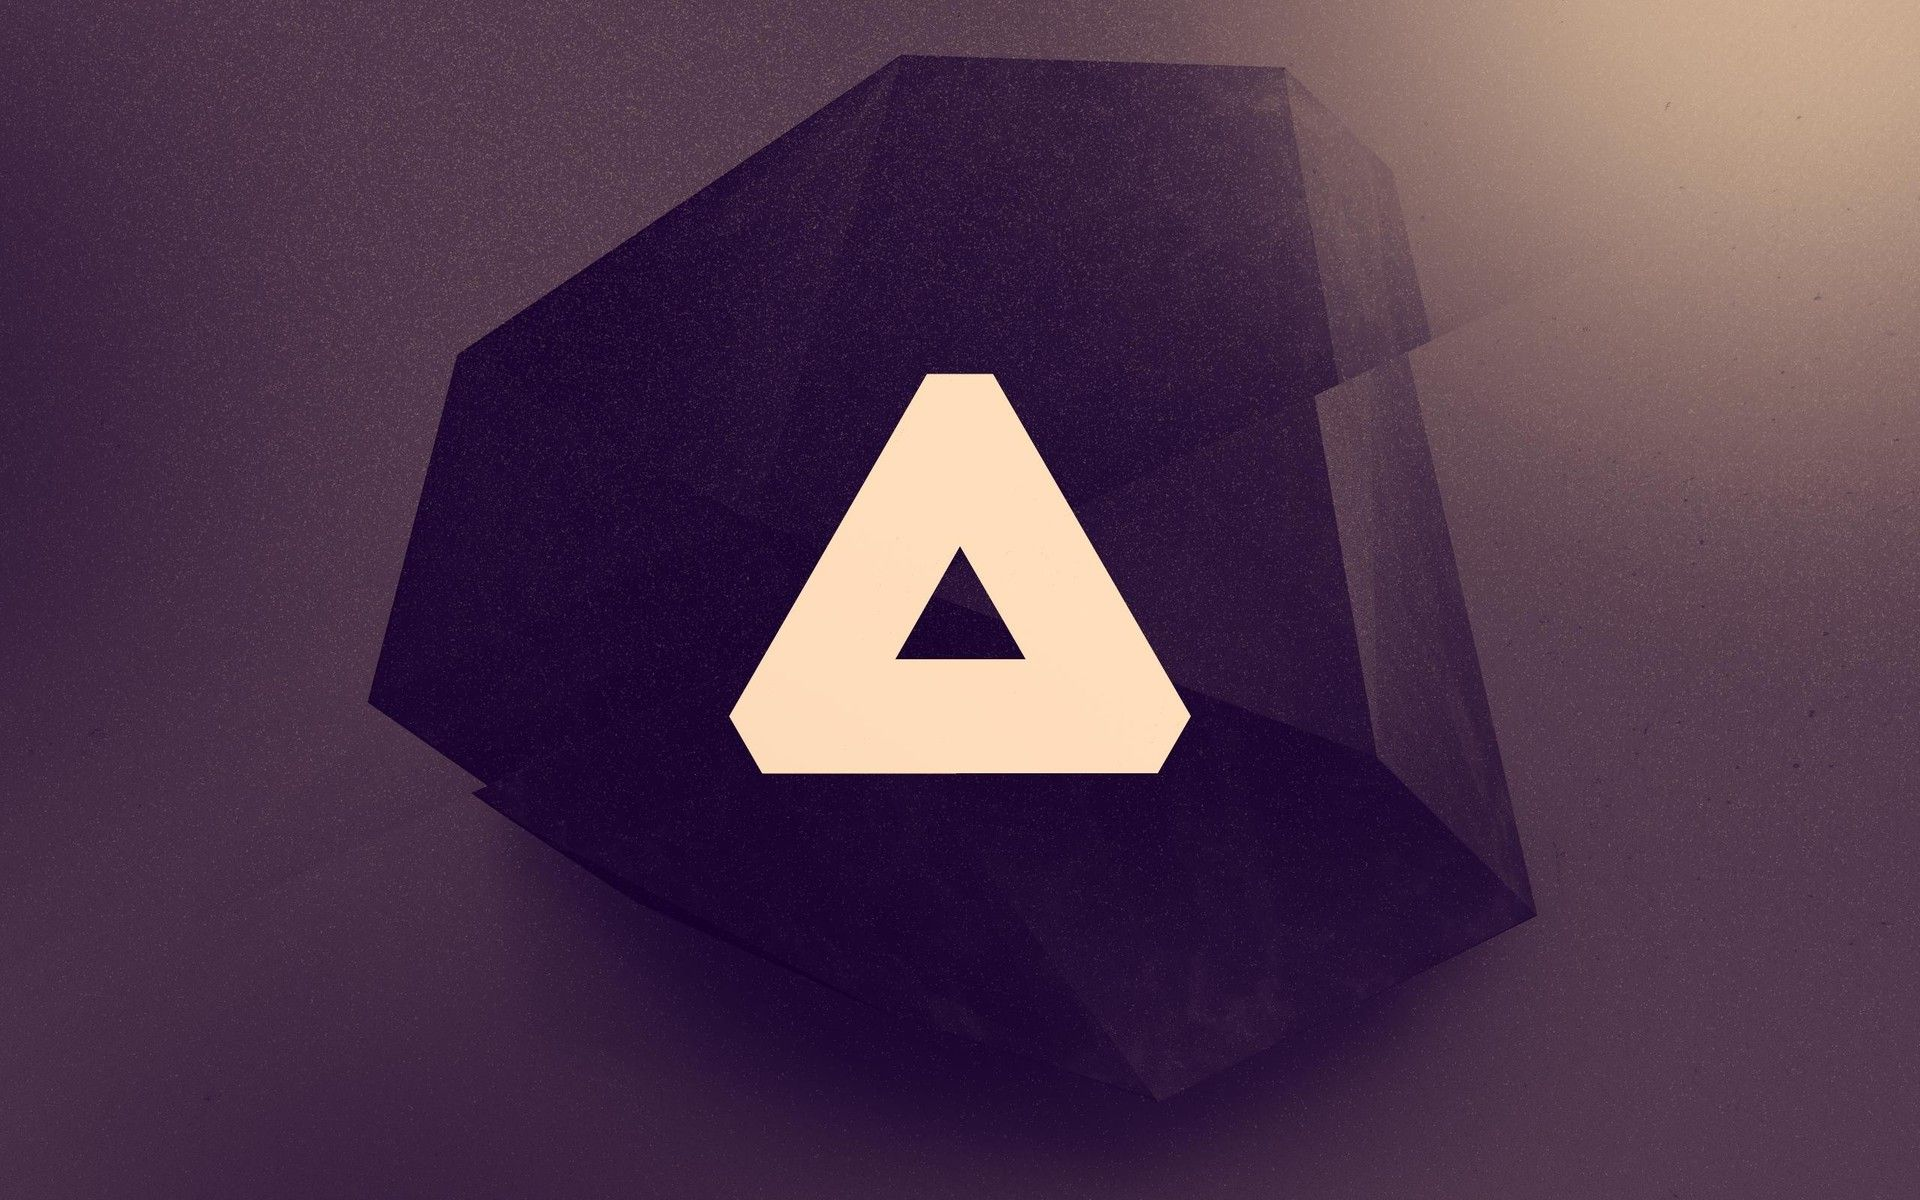 Penrose Triangle Wallpaper #4463